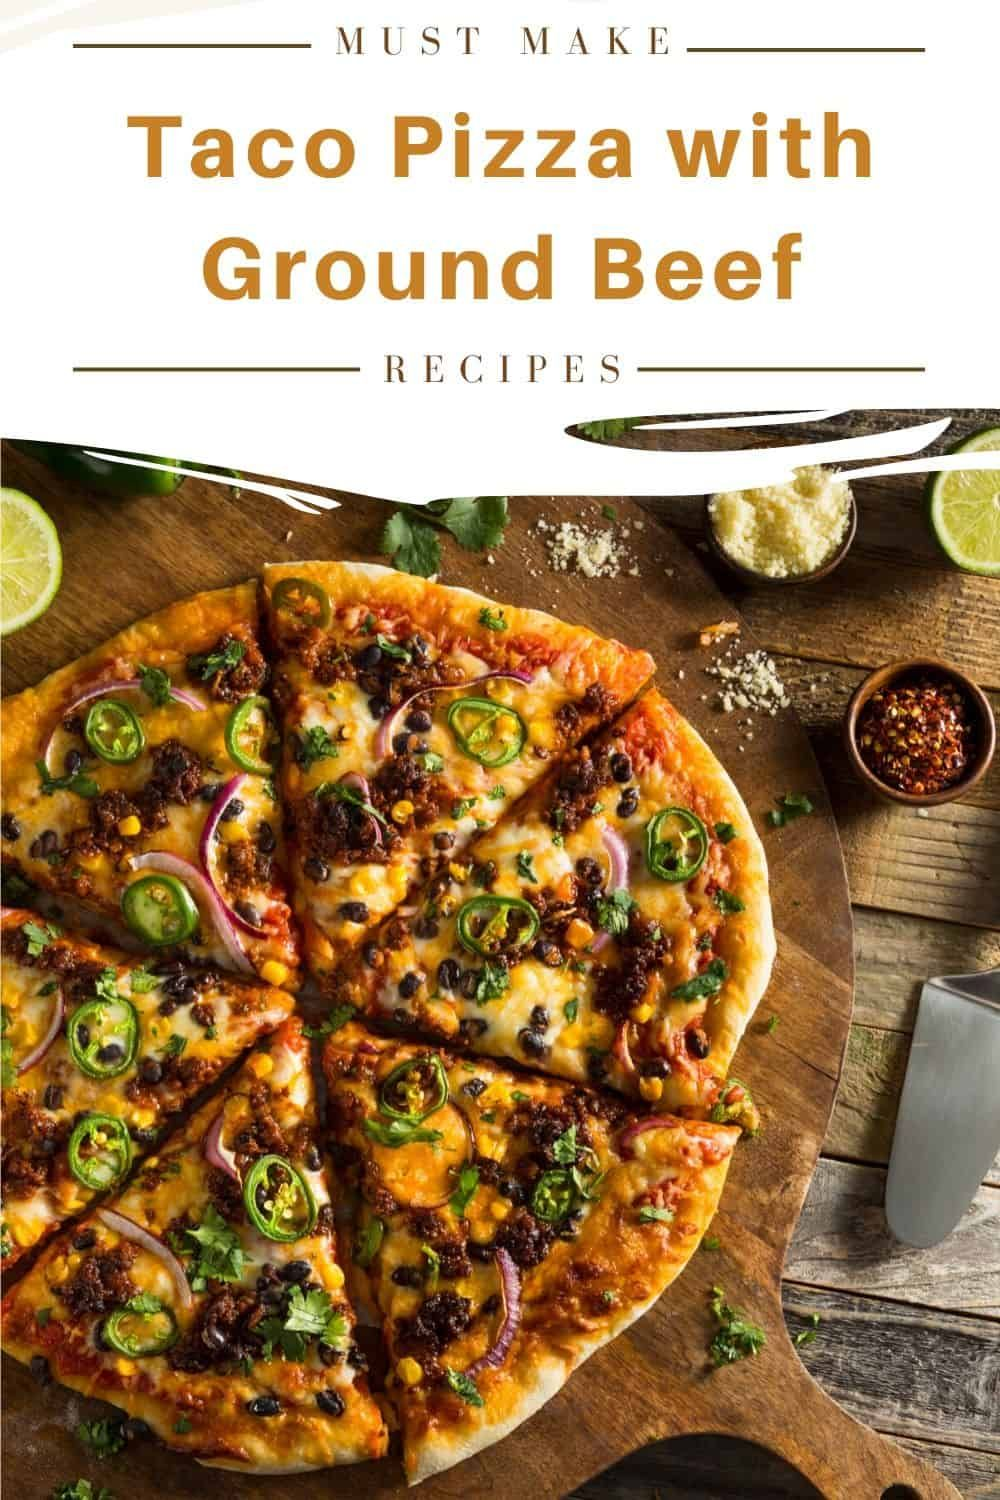 Tantalizing Taco Pizza with Ground Beef!